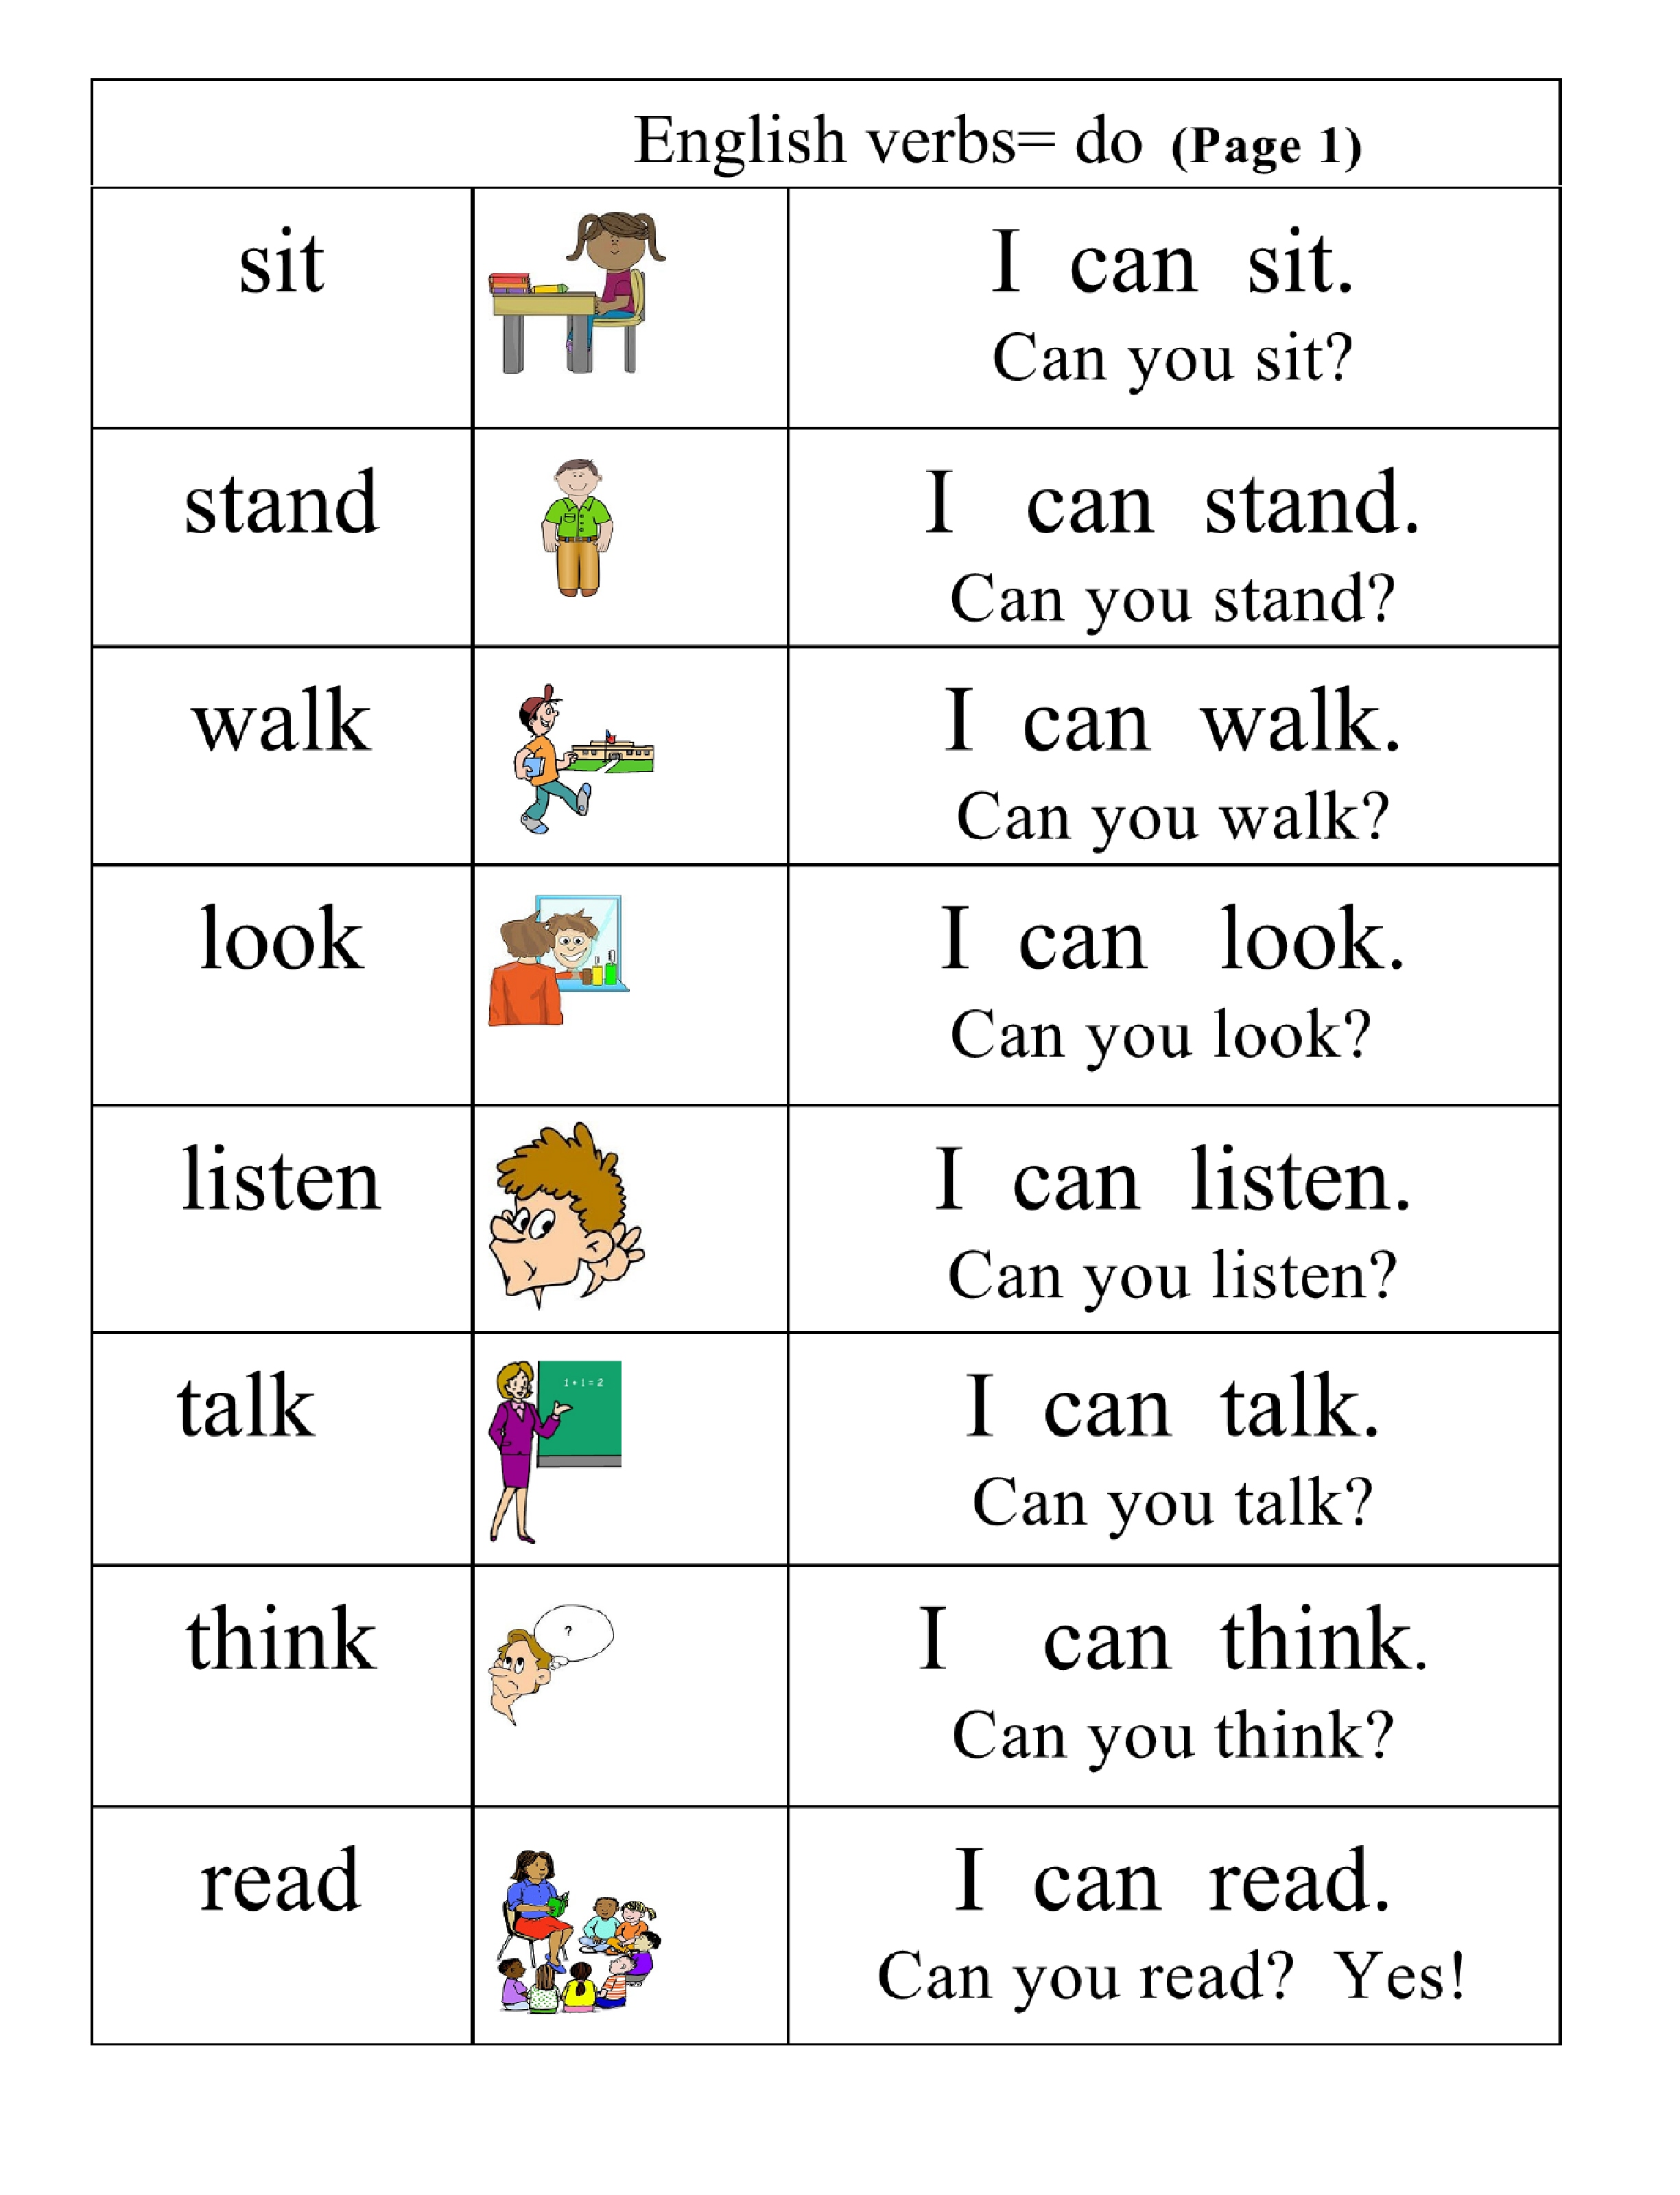 Worksheets Example Of Verbs In Sentence very basic verbs group 1 pictures words simple sentences page english pg sentence and question i can sit you sit